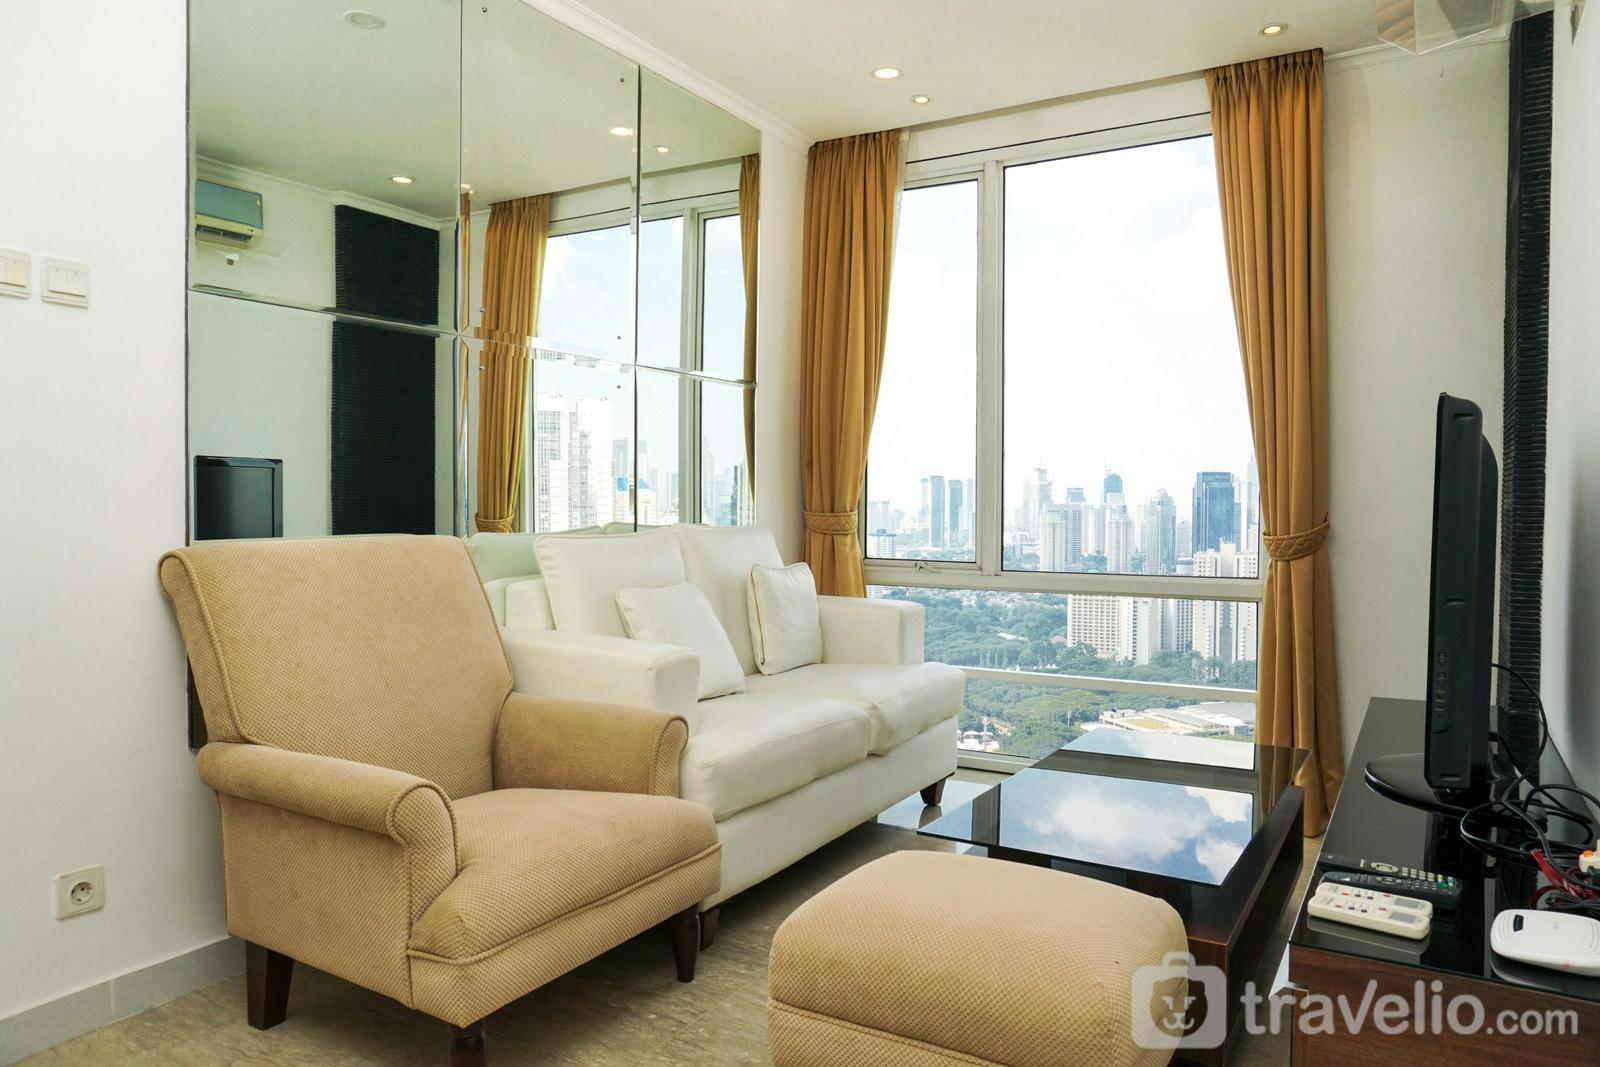 FX Residence Sudirman Senayan - Luxurious 3BR Apartment at FX Residence Sudirman By Travelio